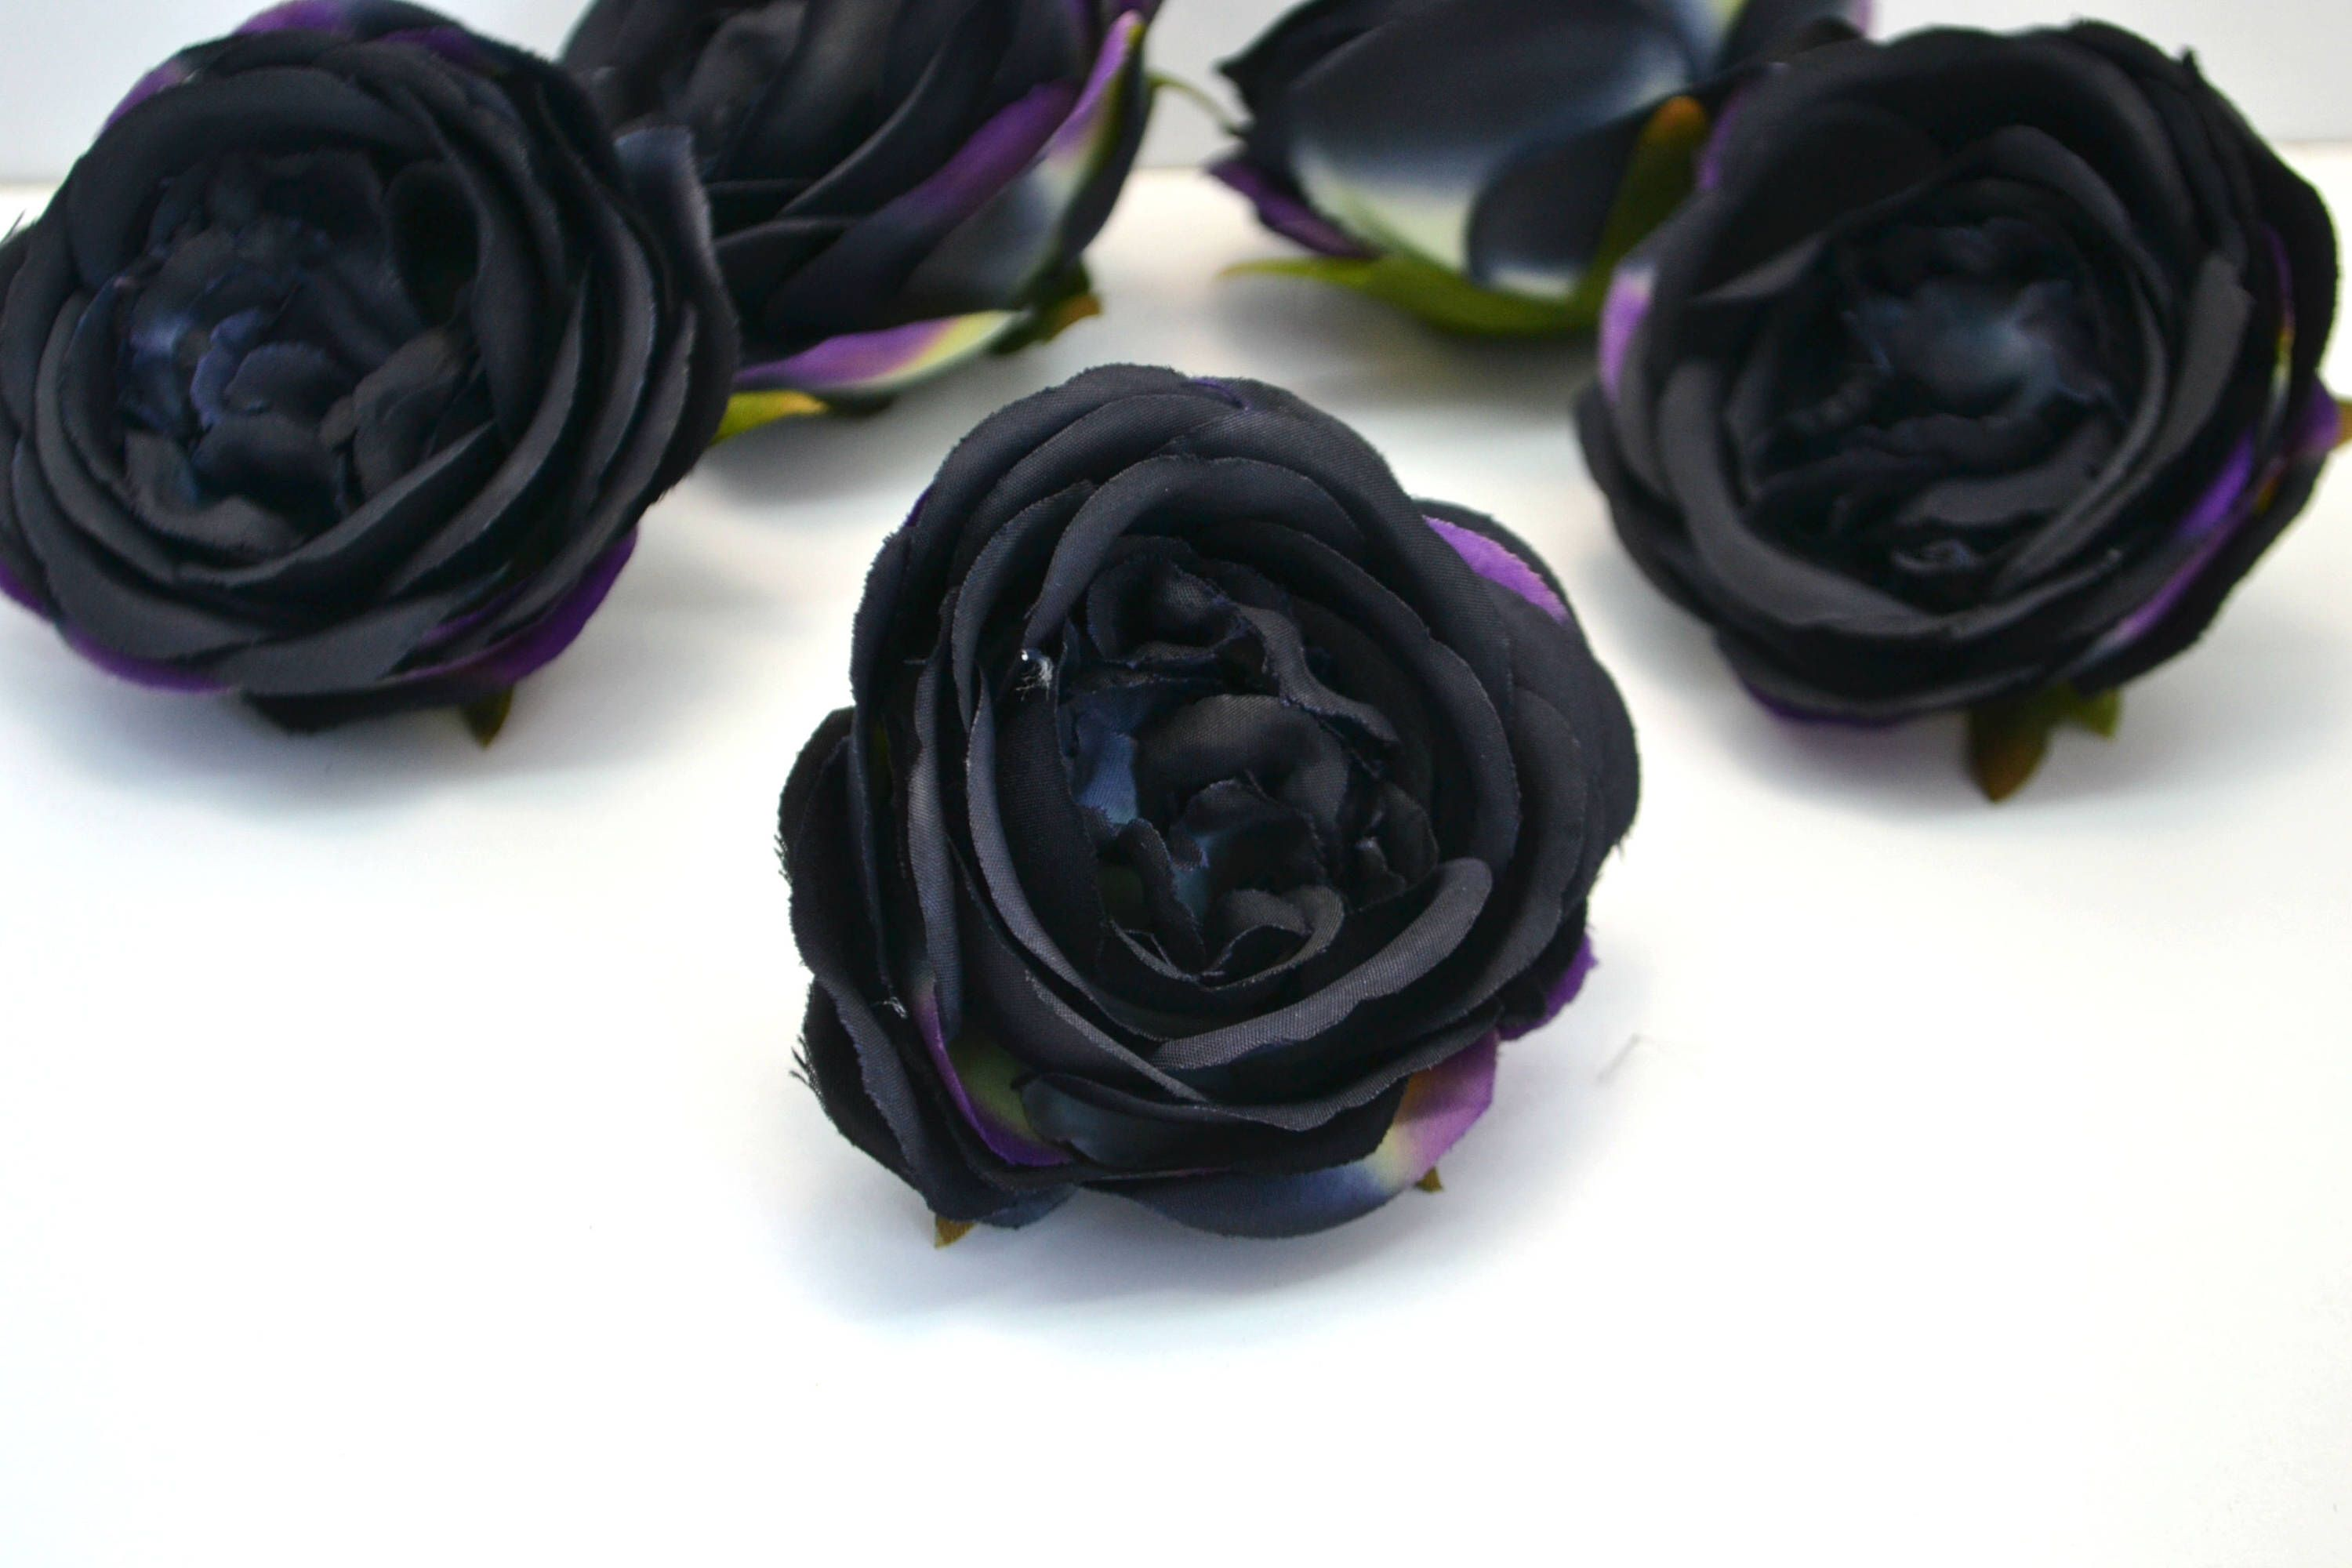 Excited to share the latest addition to my etsy shop black flowers my etsy shop black flowers gothic flowers artificial roses wedding wreath fabric flowers black hair rosette fake roses silk roses floral crown making izmirmasajfo